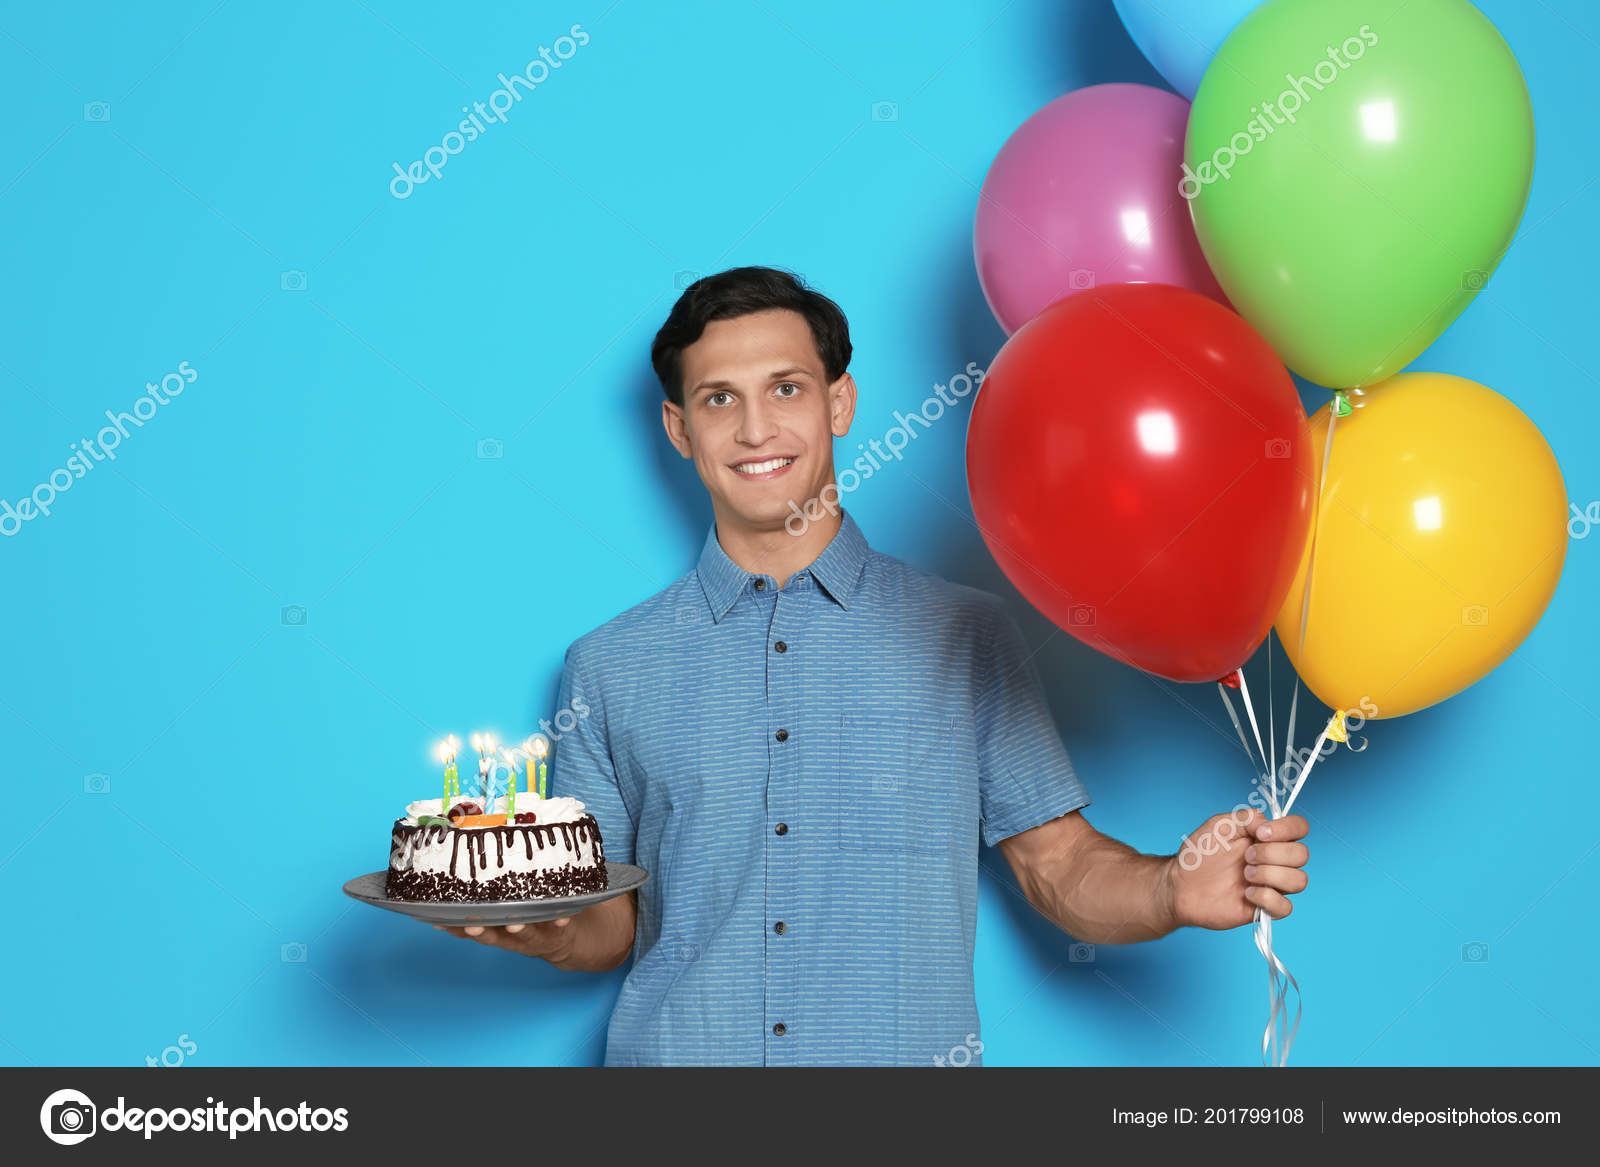 Young Man Birthday Cake Bright Balloons Color Background Stock Photo